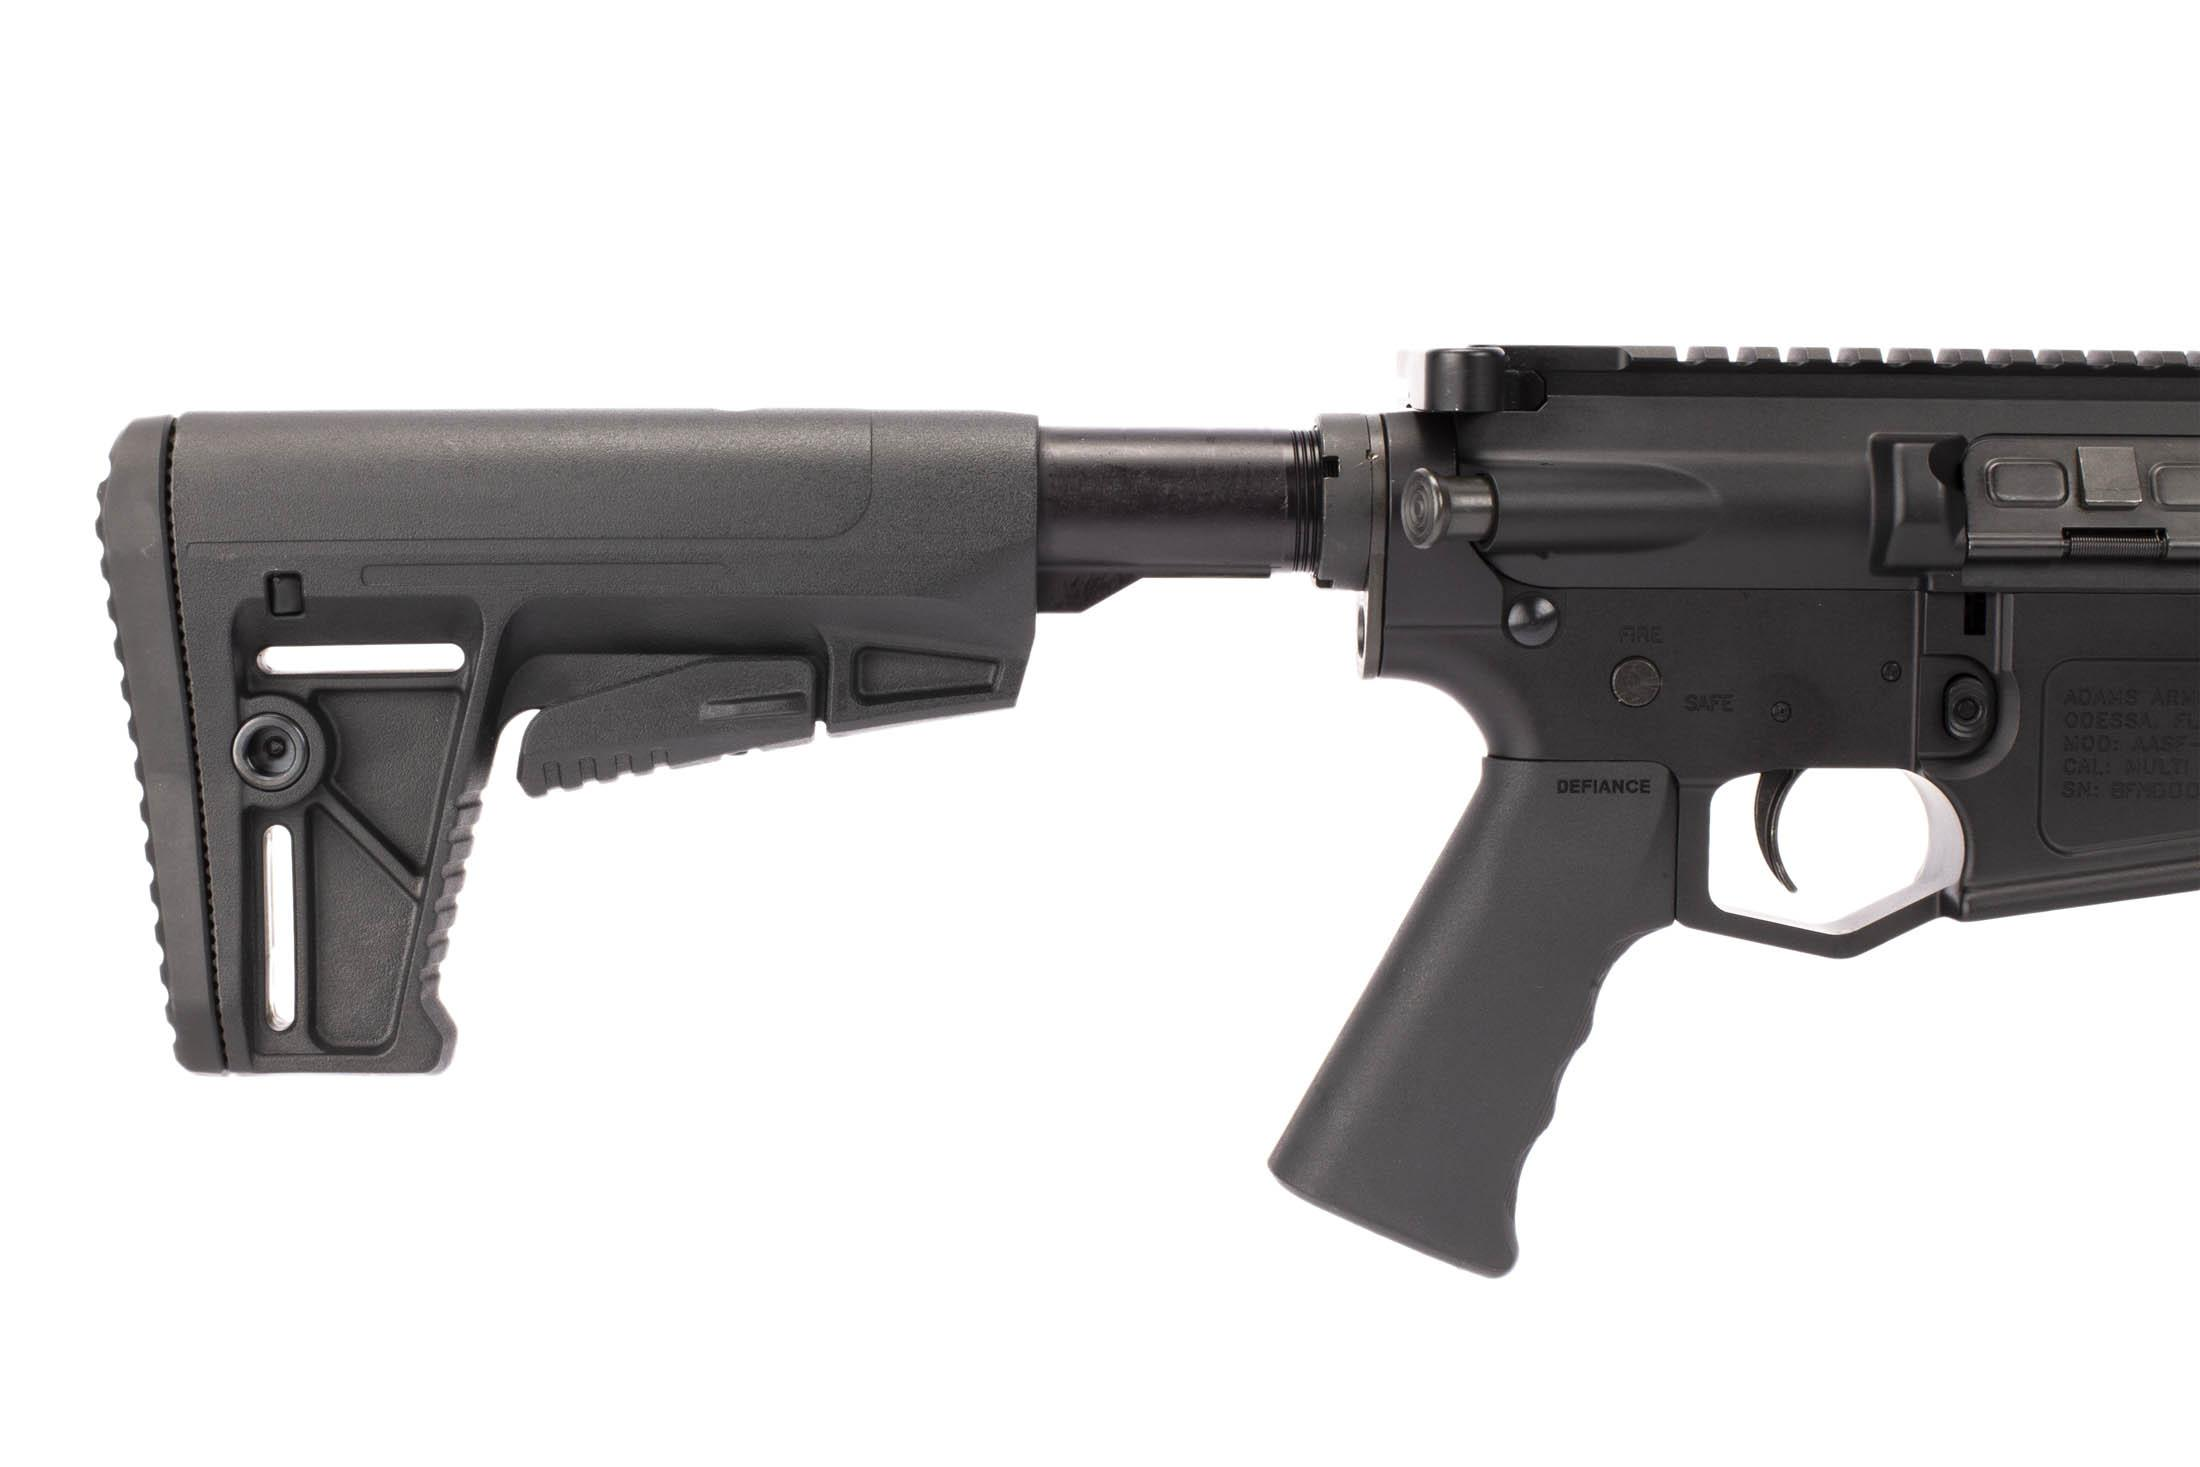 Adams Arms 16 .308 Win AR-10 rifle with short stroke gas piston is equipped with a lightweight carbine stock